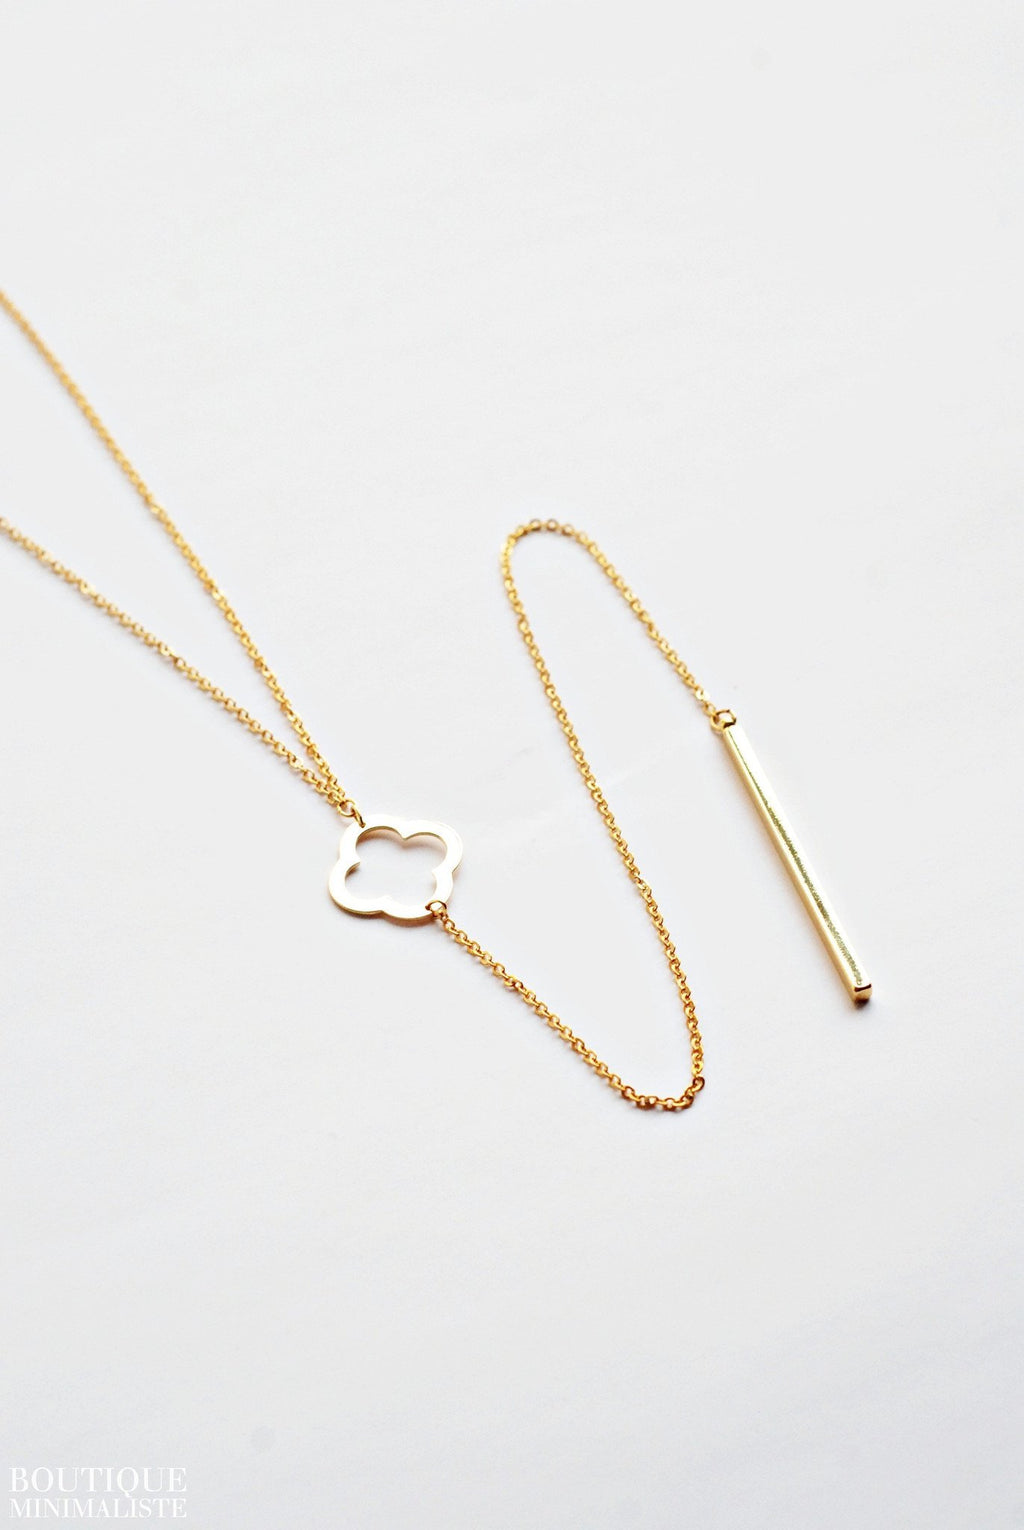 Clover Lariat Necklace - Boutique Minimaliste